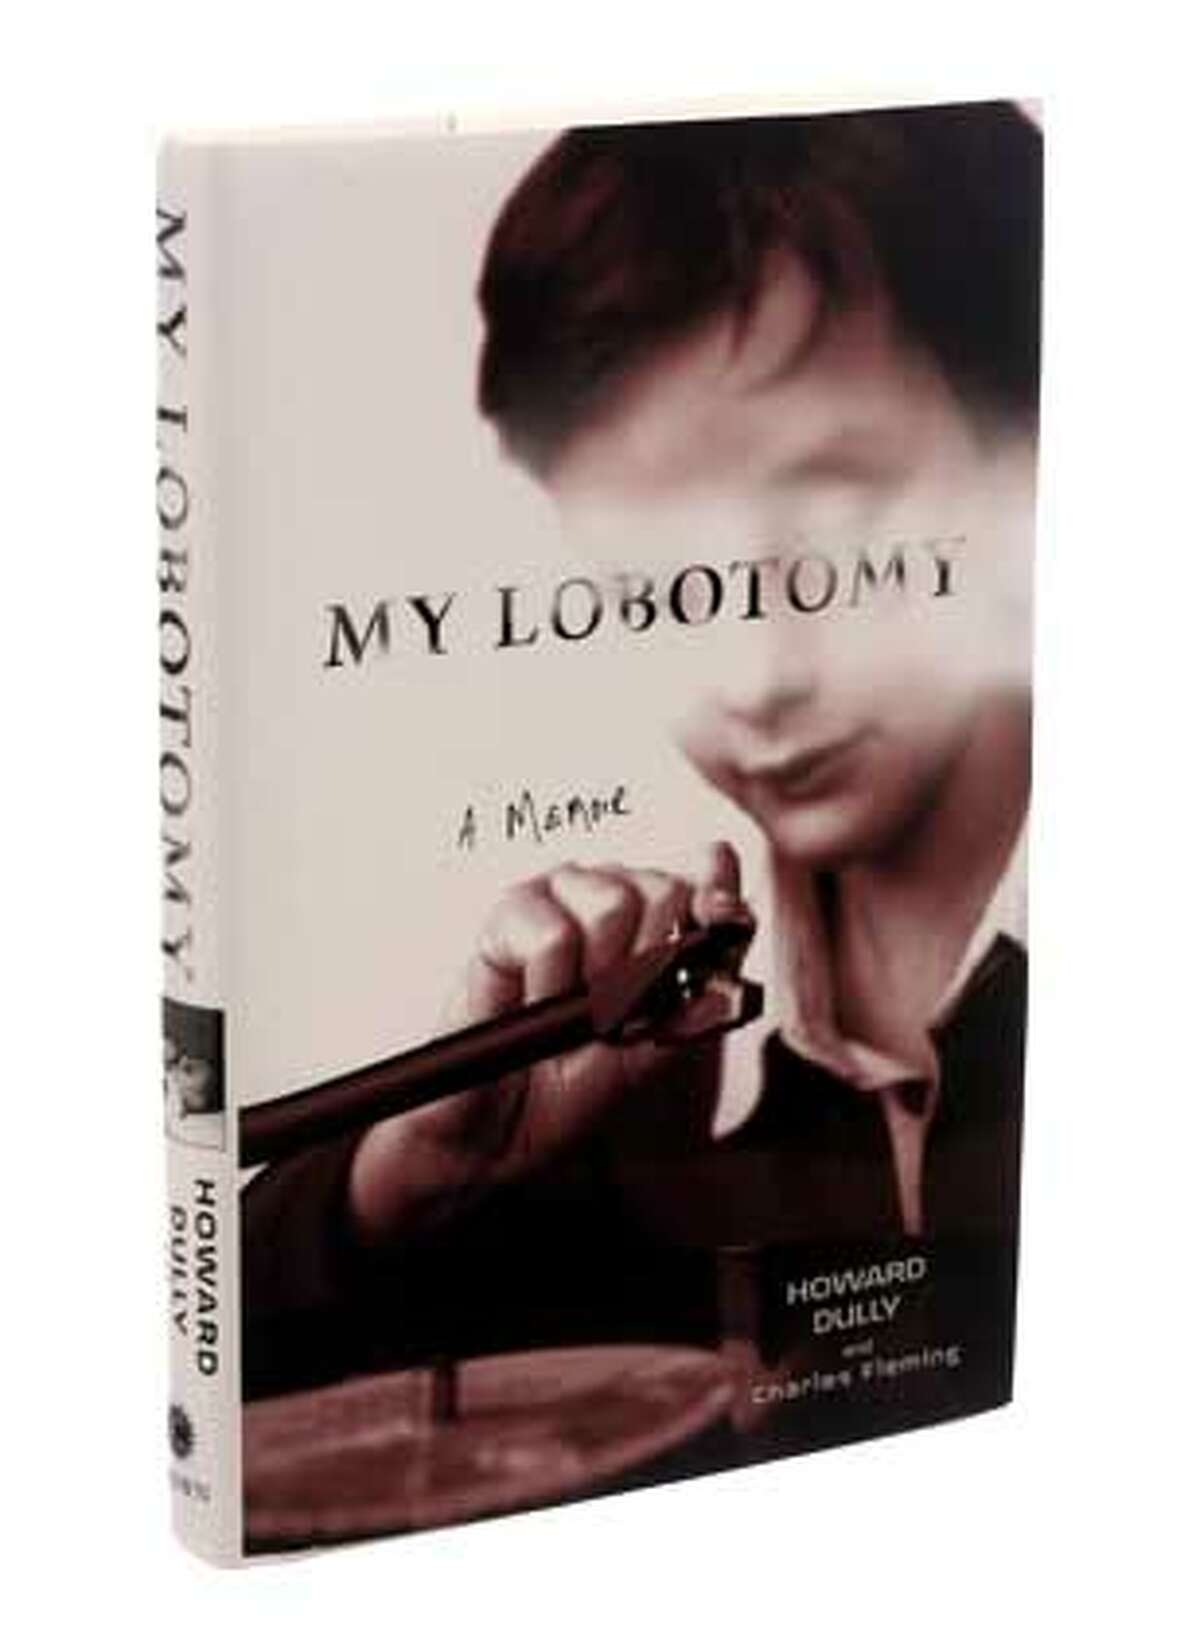 """(NYT21) NEW YORK -- Sept. 13, 2007 -- LOBOTOMY-BOOK-REVIEW-2 -- """"My Lobotomy,"""" by Howard Dully and Charles Fleming. At at age 12 he underwent a transorbital lobotomy to cure his supposed psychological problems. Forty years of misery ensued, recalled by Dully in a celebrated documentary broadcast on National Public Radio in November 2005 and now, in collaboration with Charles Fleming, in the harrowing """"My Lobotomy."""" (G. Paul Burnett/The New York Times) Ran on: 09-26-2007 Howard Dully has taken a leave from his job as a bus driver to promote his book, My Lobotomy. A public radio version of his story prompted a huge response."""